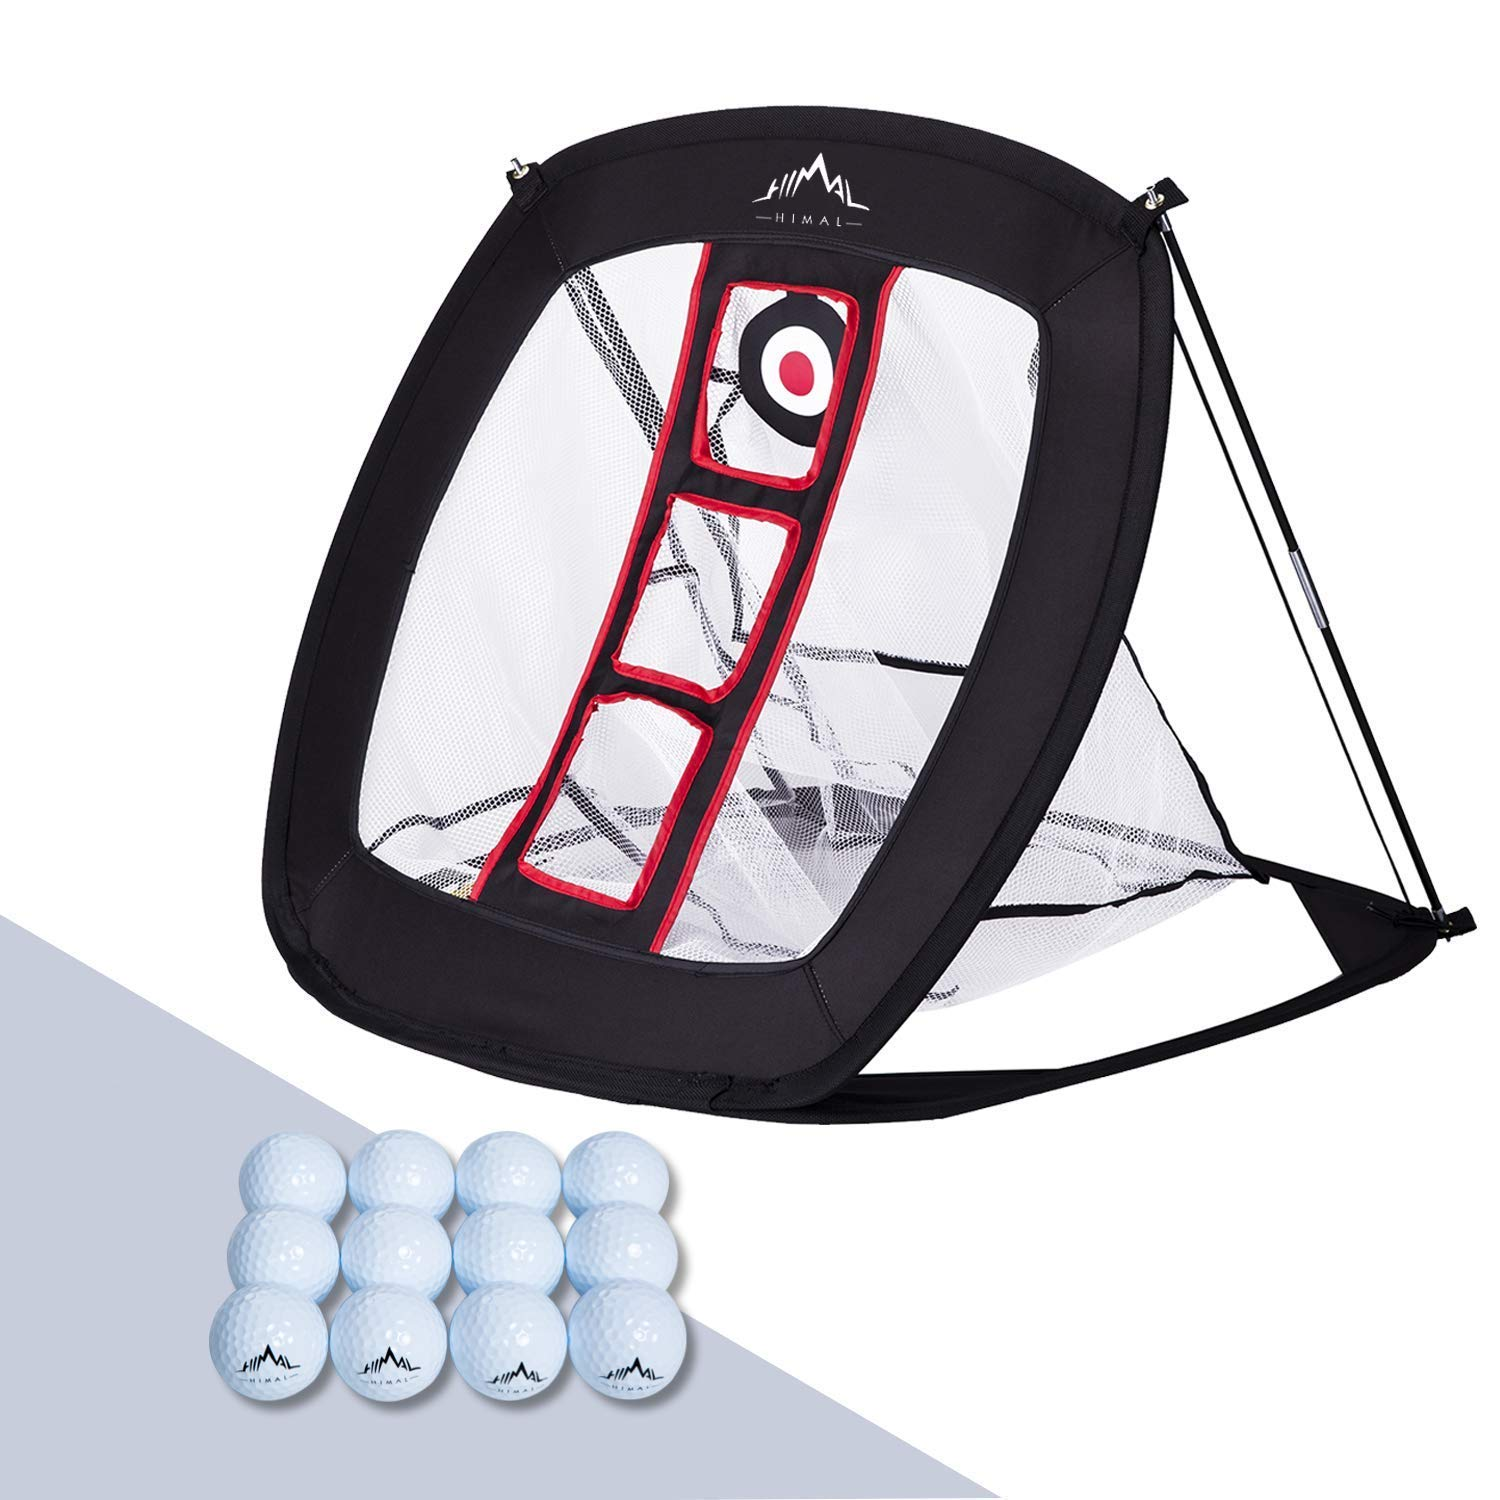 Himal Pop Up Golf Chipping Net Indoor Outdoor Collapsible Golf Accessories Golfing Target Net - for Accuracy and Swing Practice with 12 Training Balls by Himal Outdoors